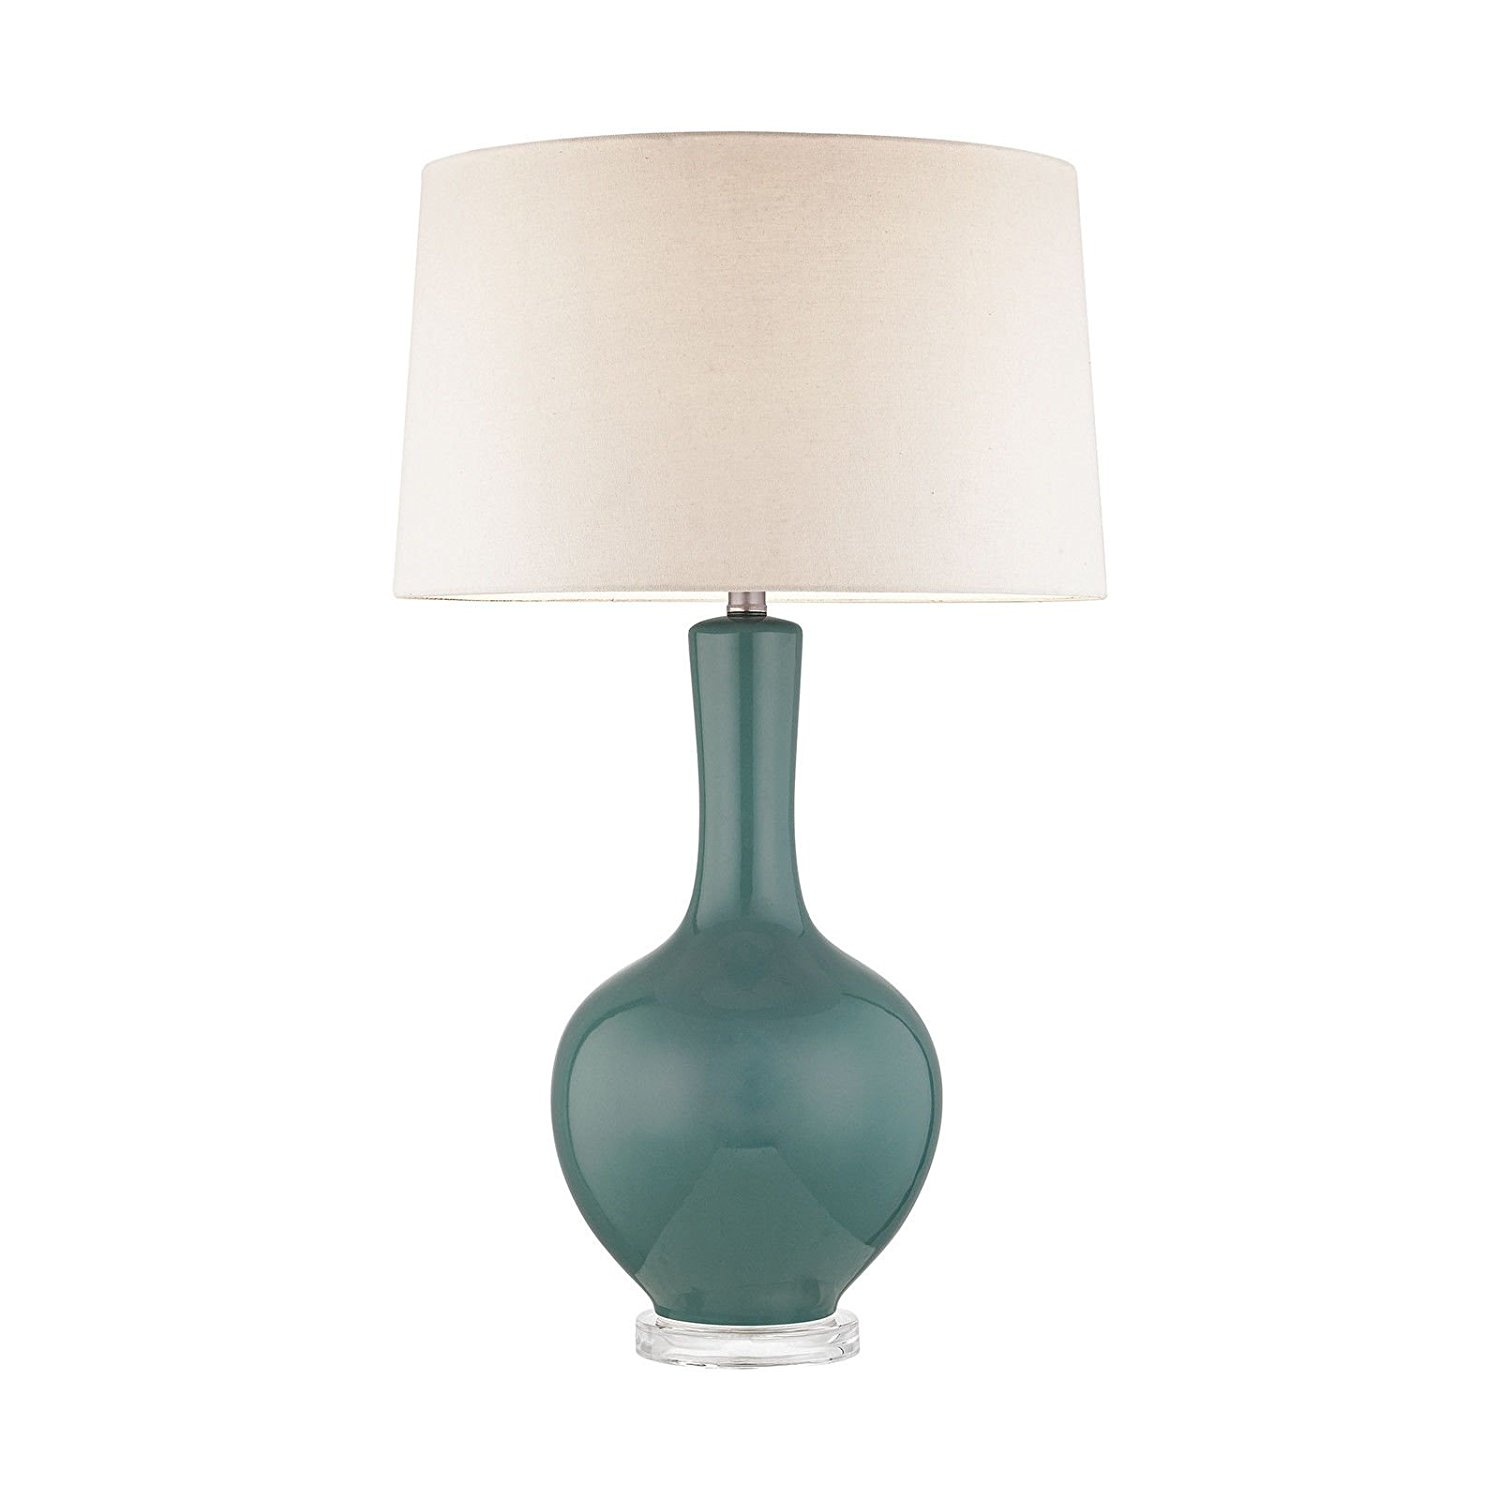 Get Quotations Dimond Lighting D2929T Judith Table Lamp In Teal By Colorfabulouslighting Efns290262570718587